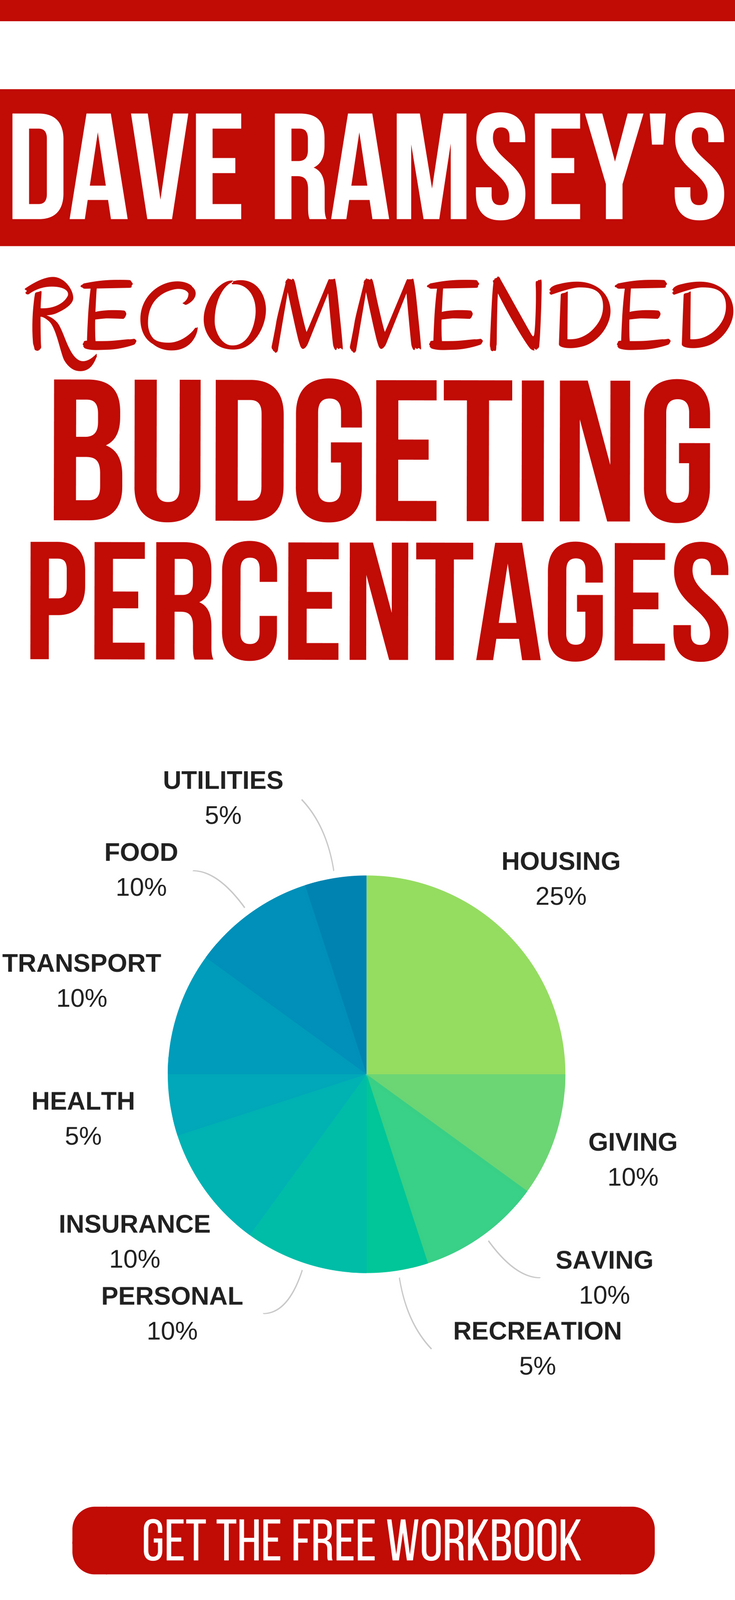 Dave Ramsey Recommended Household Budget Percentages | Spartipps